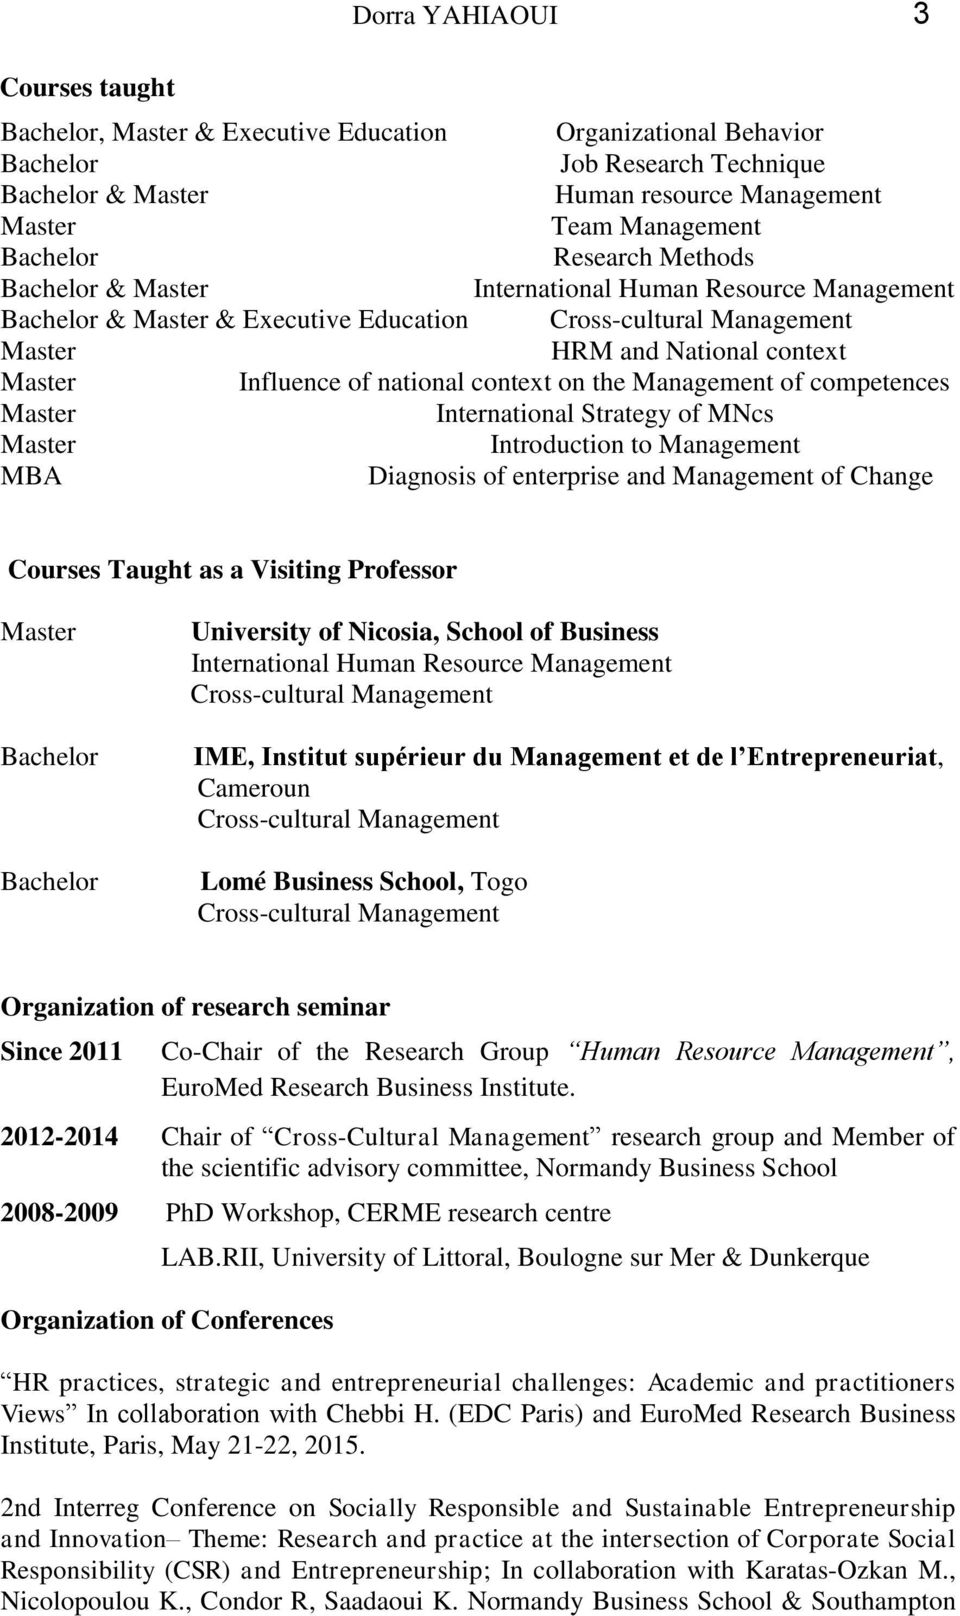 International Strategy of MNcs Introduction to Management MBA Diagnosis of enterprise and Management of Change Courses Taught as a Visiting Professor Bachelor Bachelor University of Nicosia, School